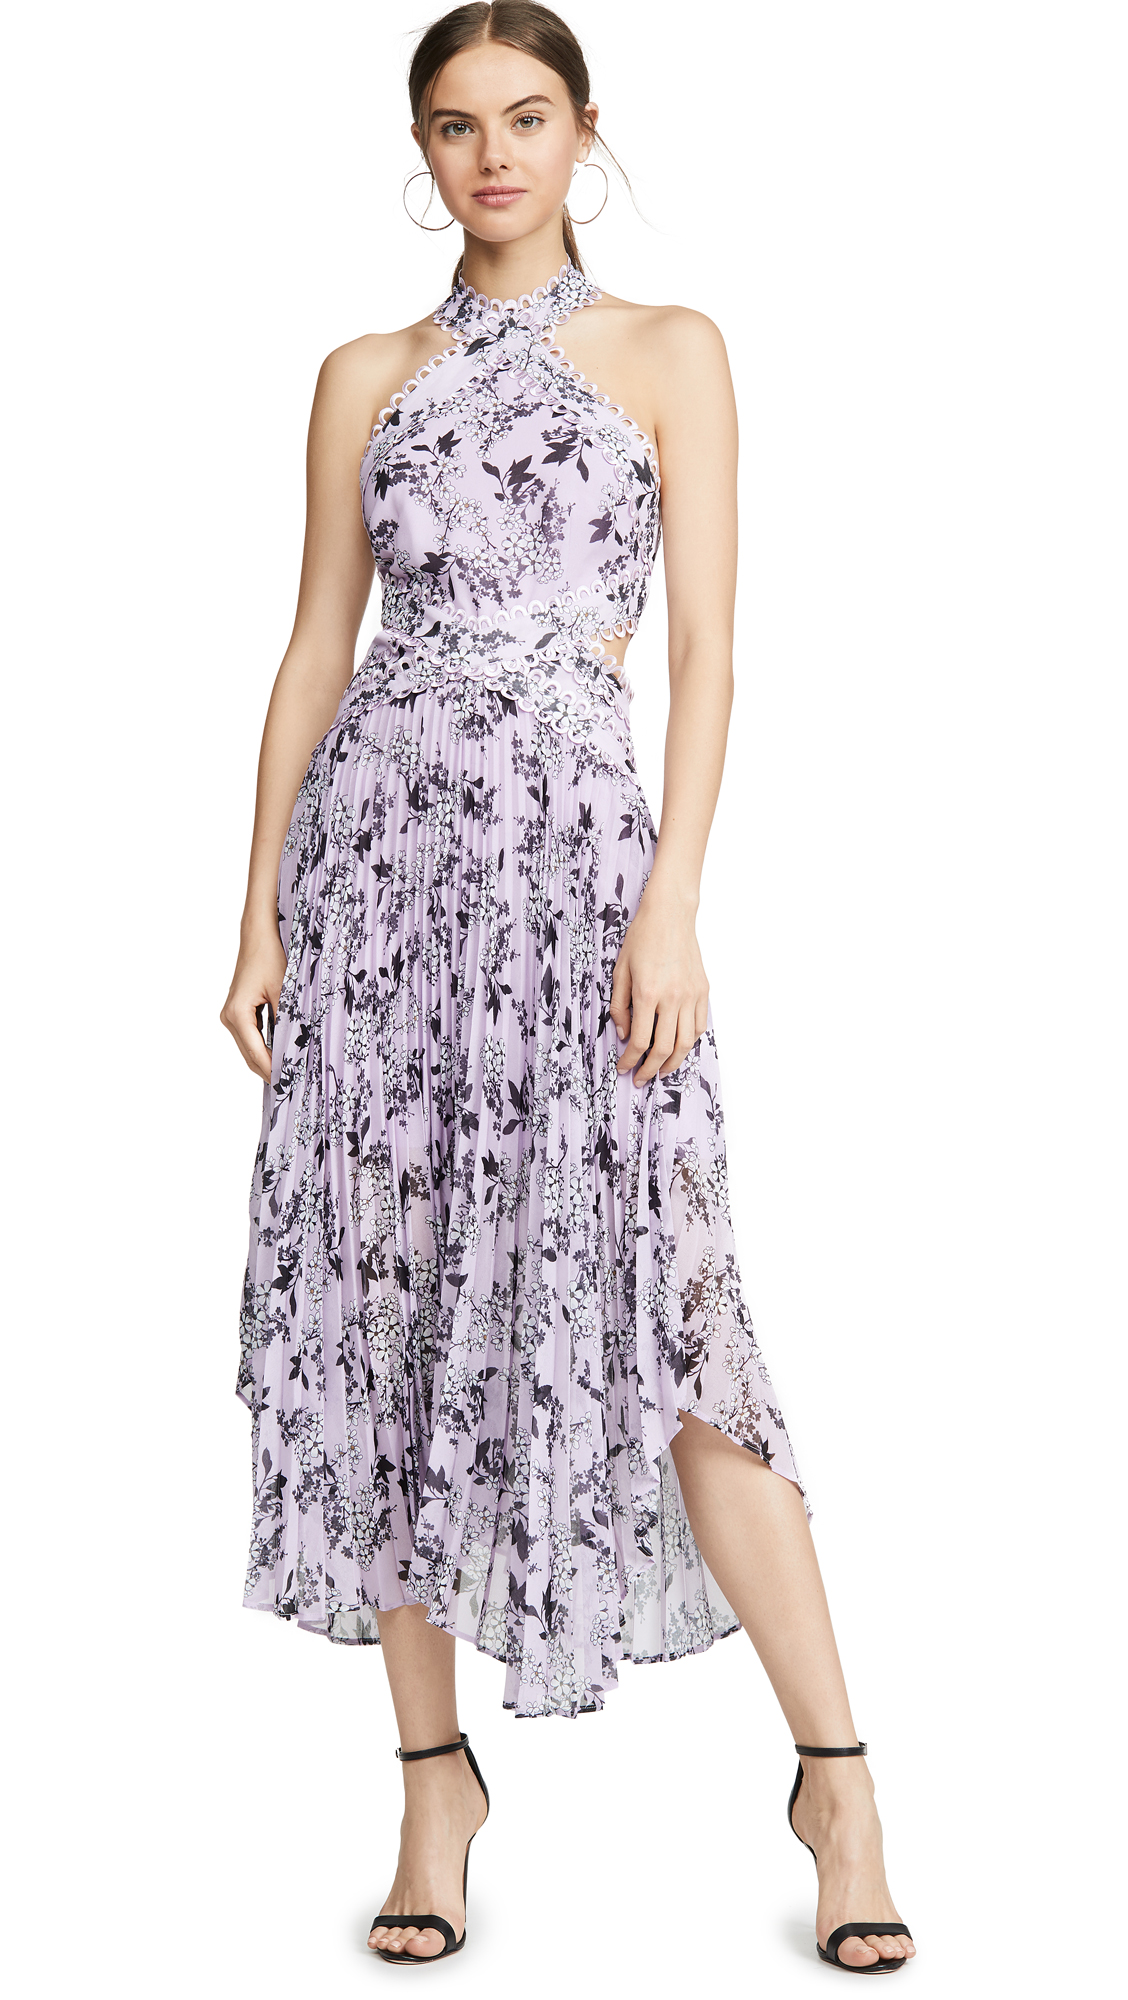 c425526c8f9 Luscious Dress in Lilac Floral